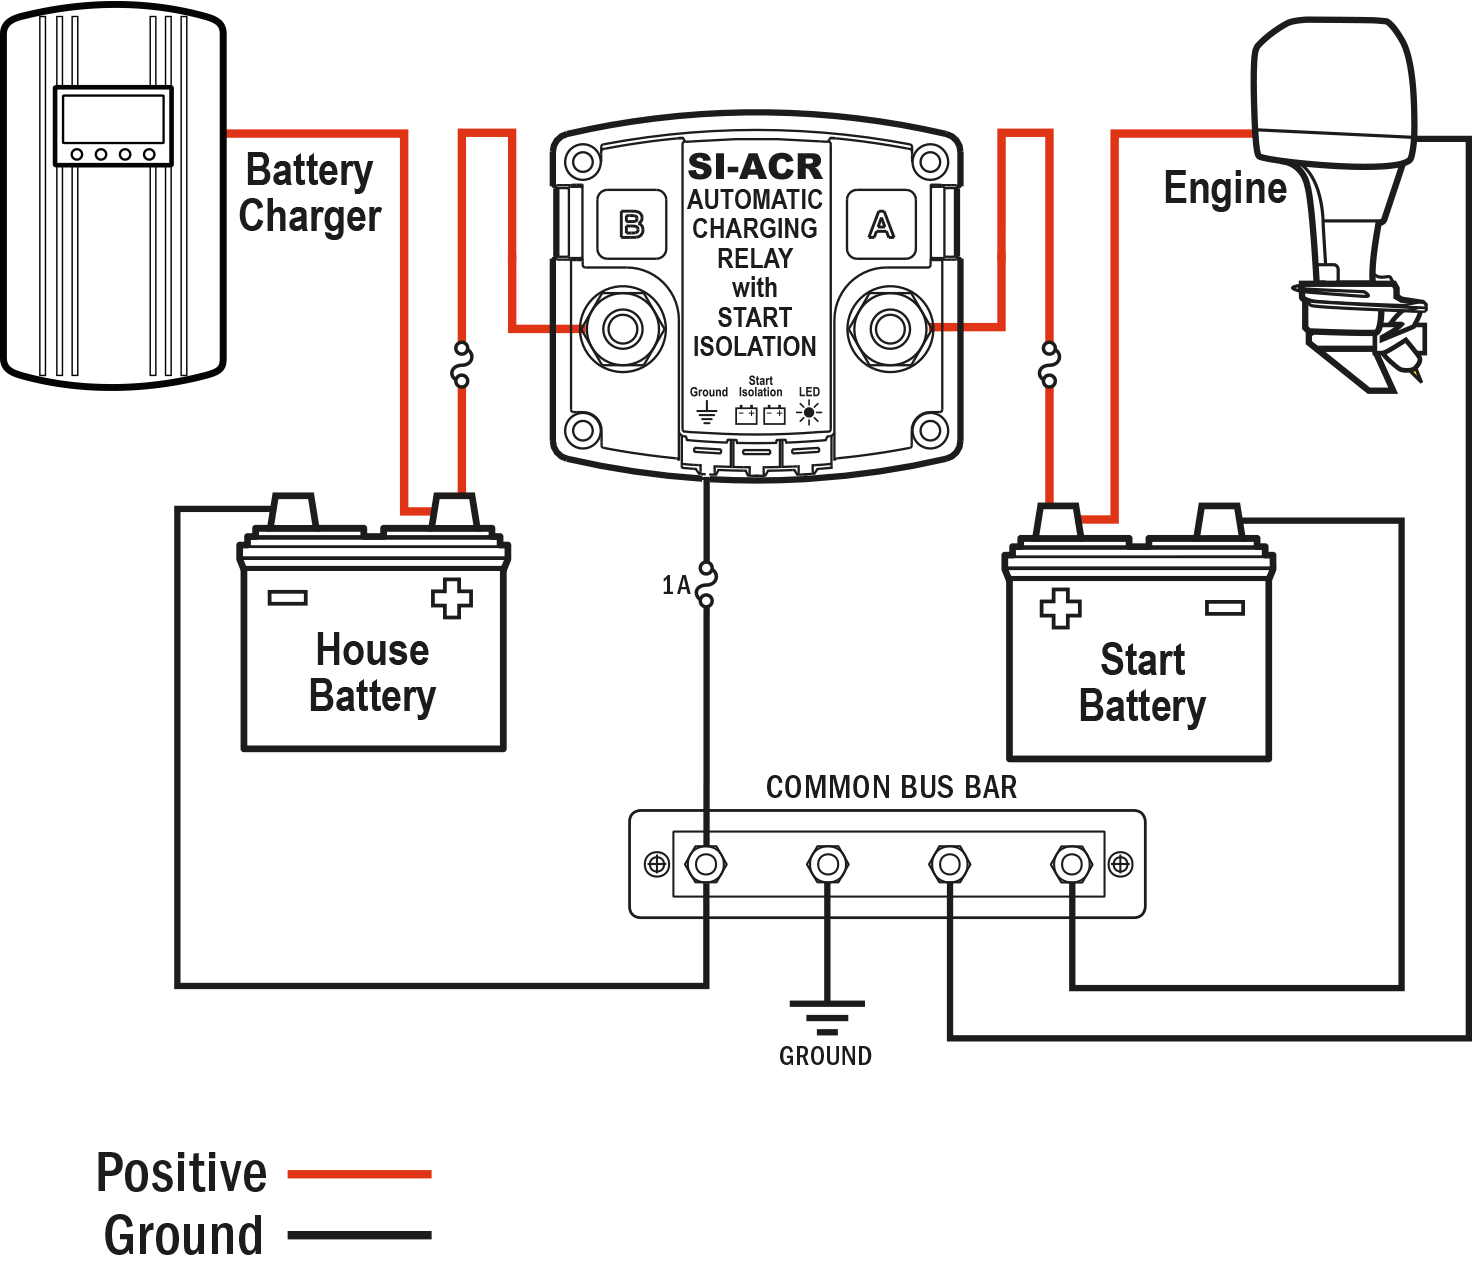 Quickinstall W Batterycharger on Boat Stereo Amp Wiring Diagram